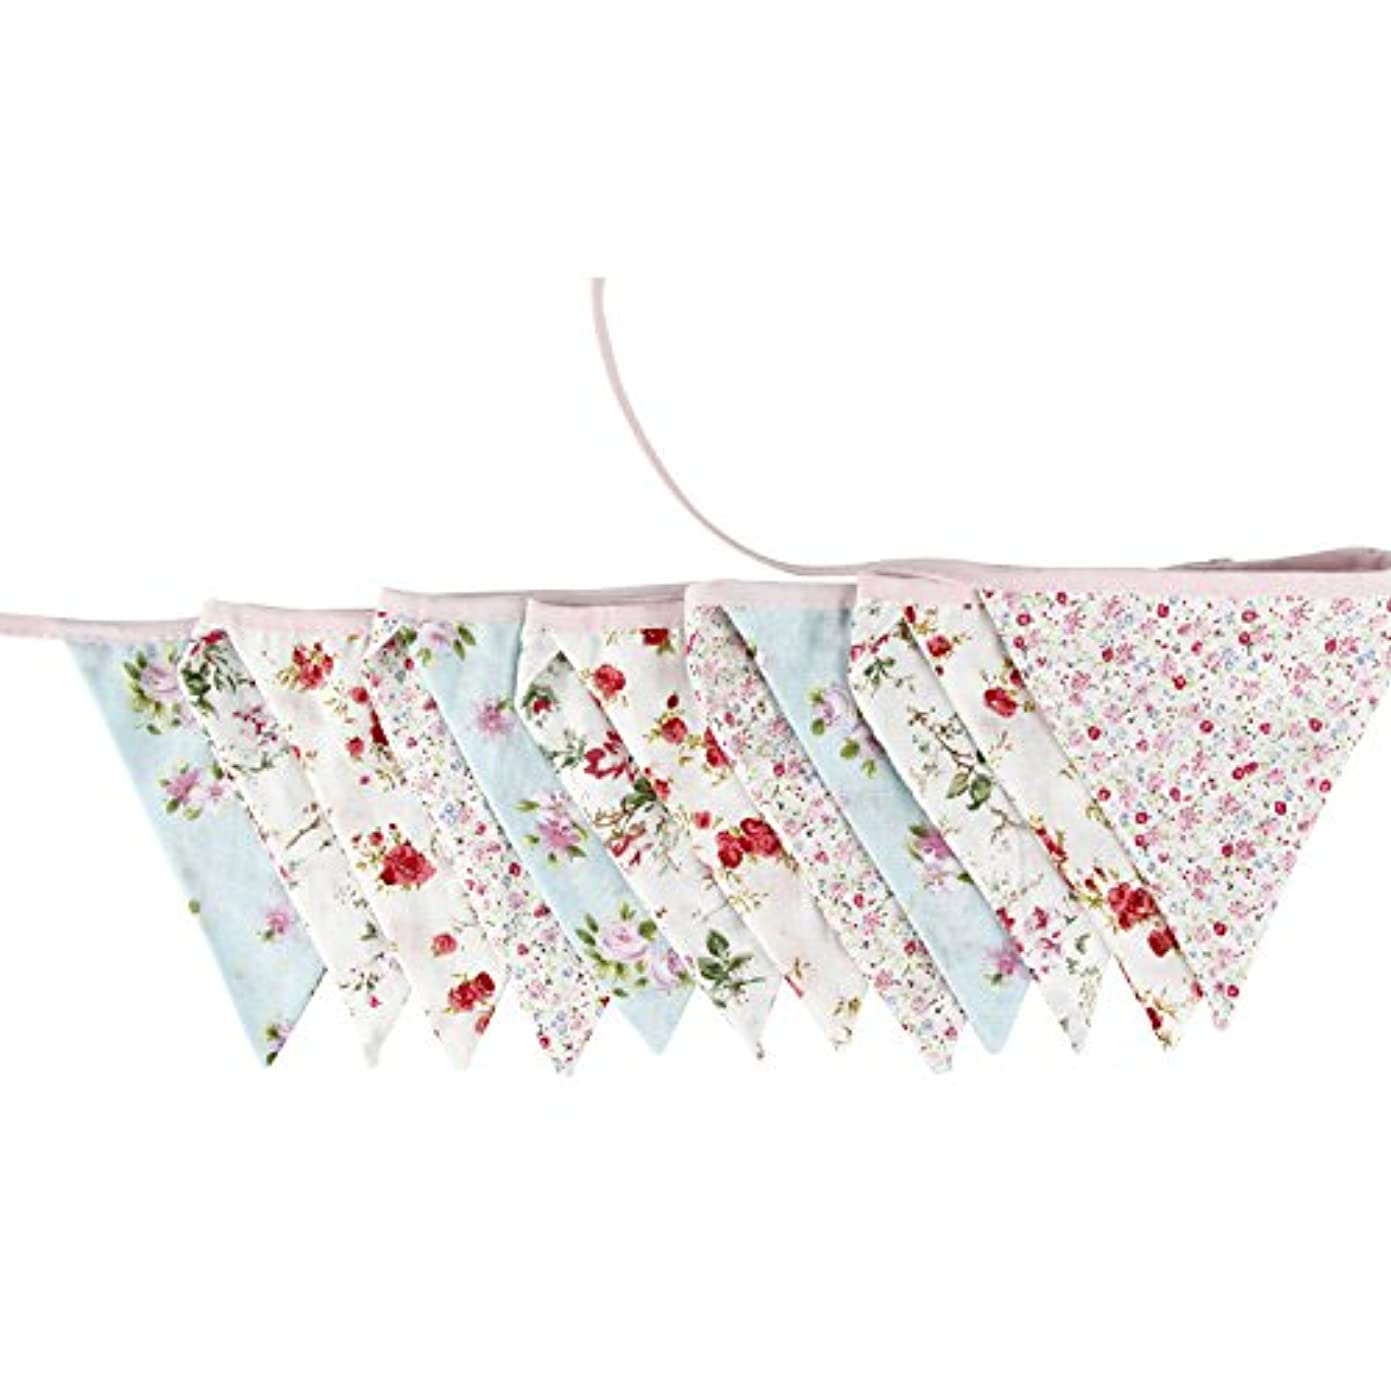 3.3M/10.8Ft Floral Lovely Flag Banner Pennant Flag Garlands Fabric Triangle Flag Double Sided Vintage Cloth Shabby Chic Decoration for Birthday Parties,Kitchen,Bedroom jb26350830